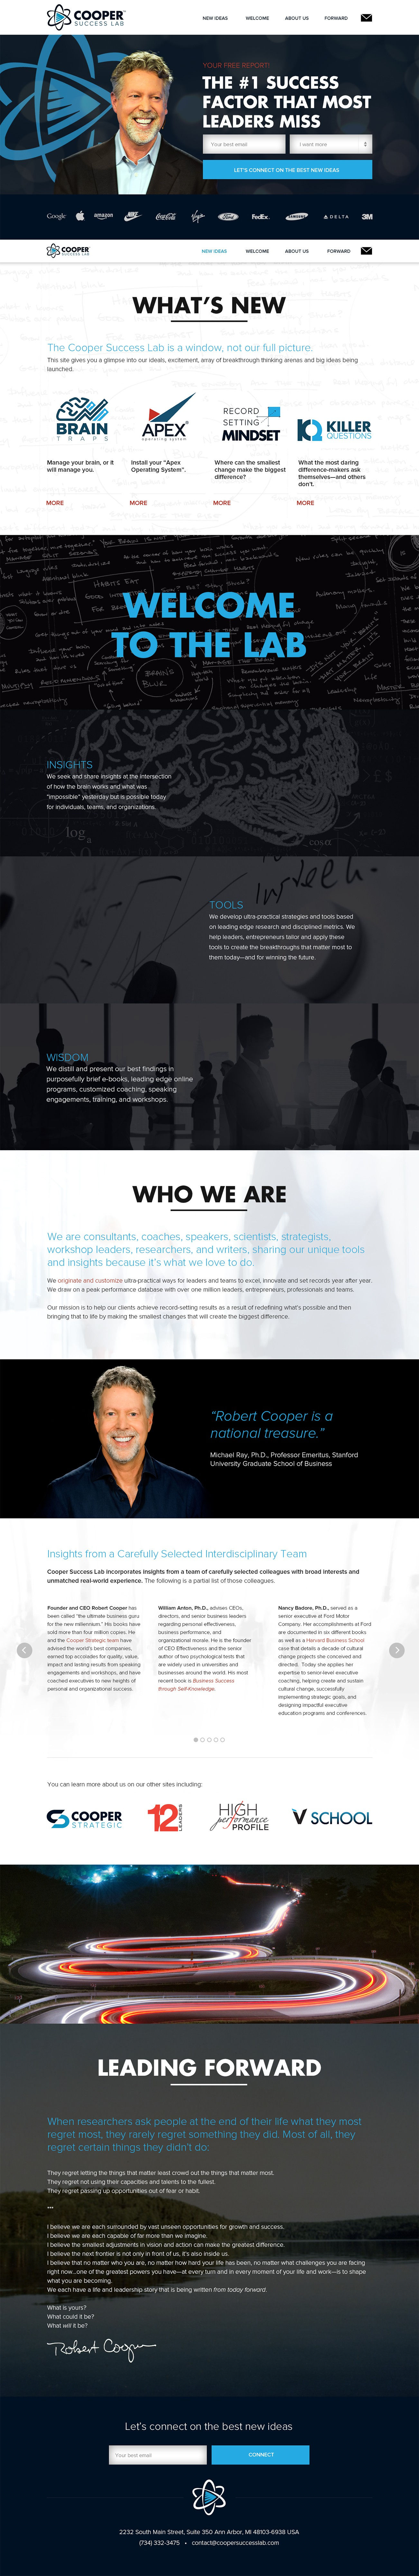 Cooper Success Lab website design | Long-form, one page site.